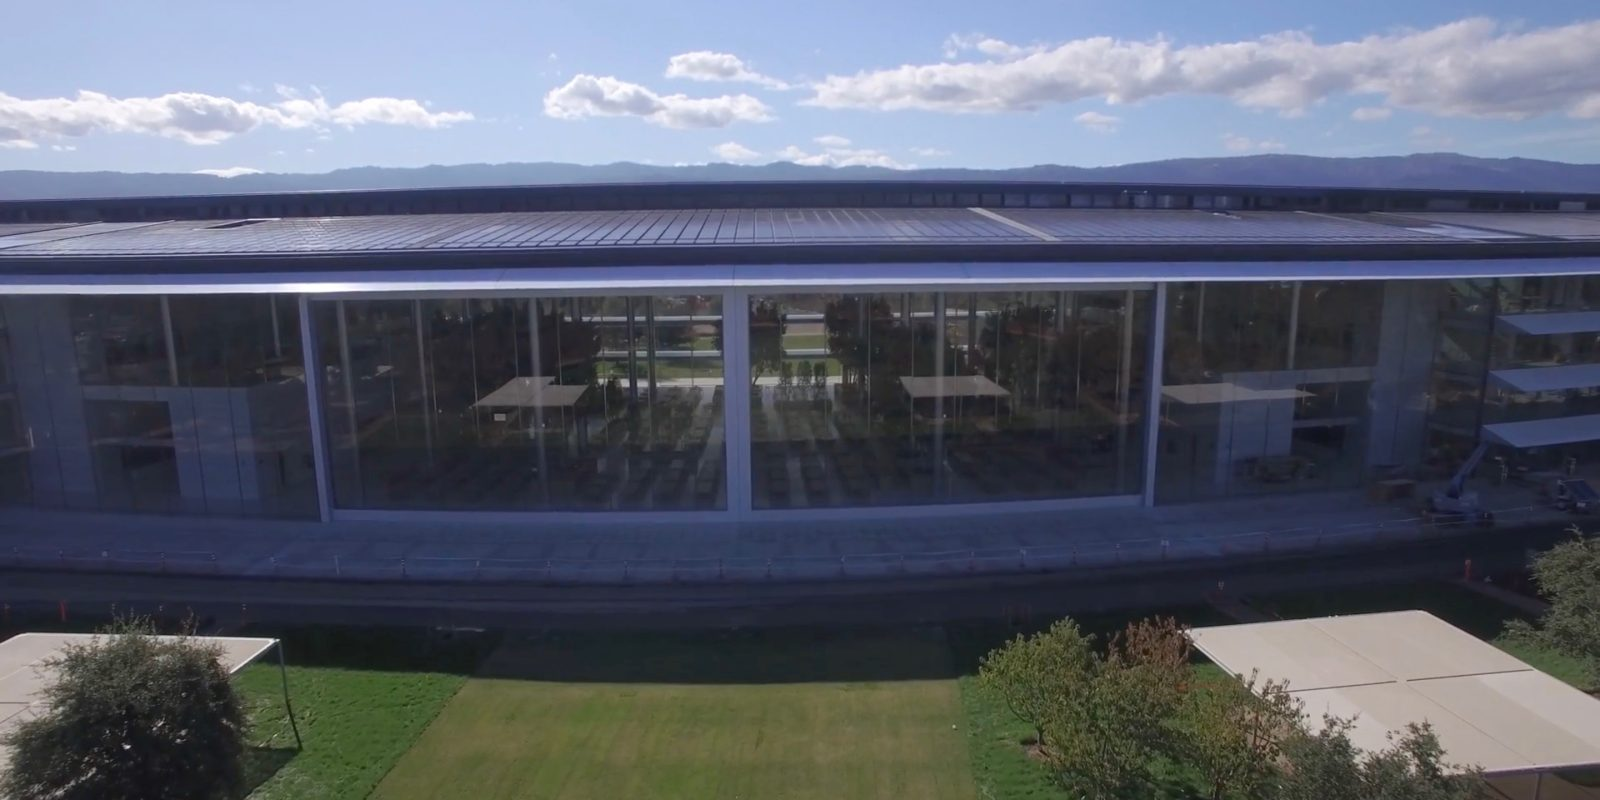 Watch this breathtaking GIF of Apple Park's 3-story lunchroom door opening